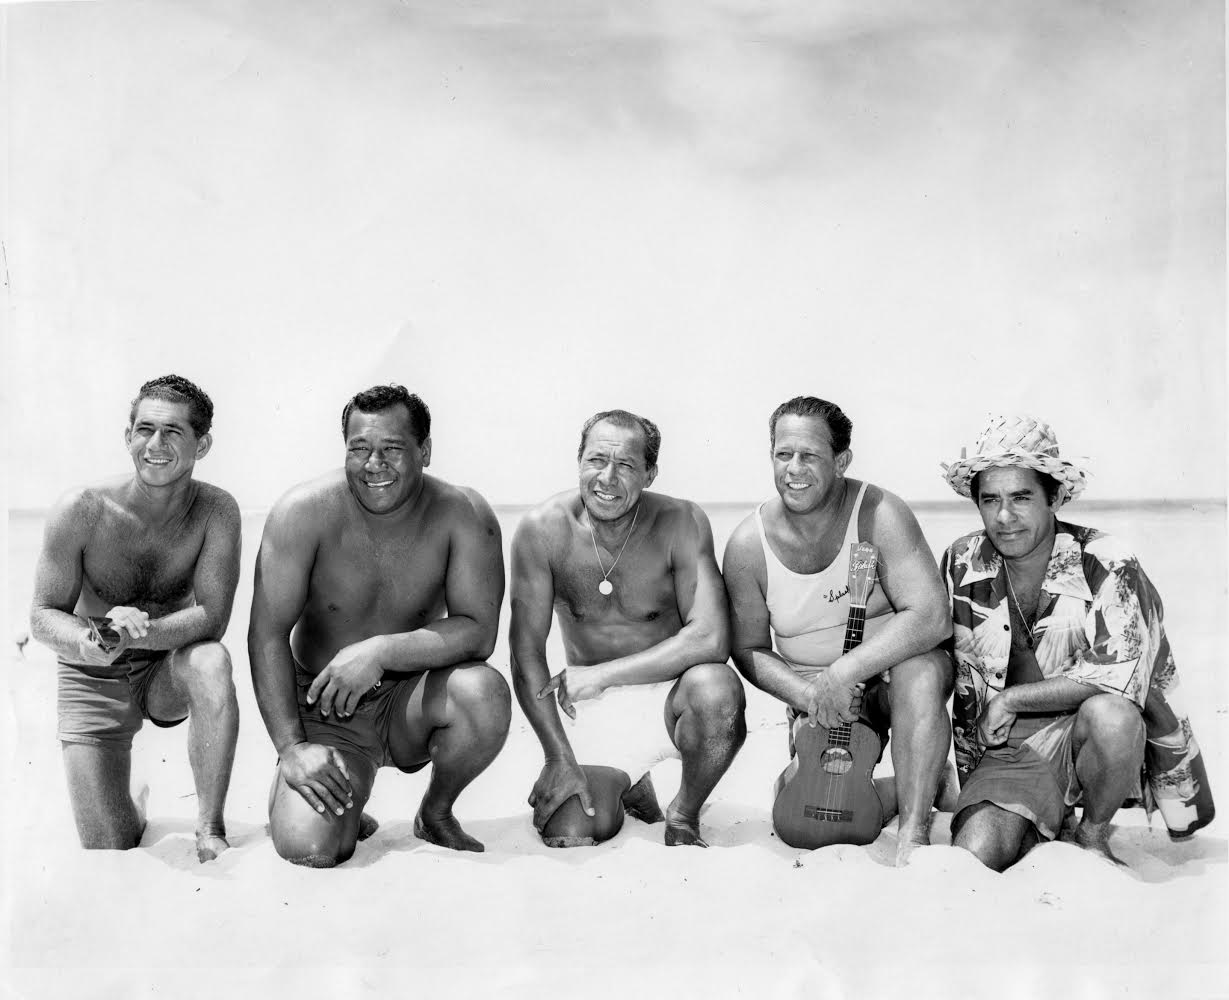 """Rube Hauseman has an interesting story about creating the first Aloha Shirts. He first gave them to the Waikiki Beach Boys, Panama Dave, Colgate, """"Chick""""and after surfing, they all would go to a downtown bar called the Rathskellar. The shirts were actually referred to as the Rathskellar Shirts after their debut."""